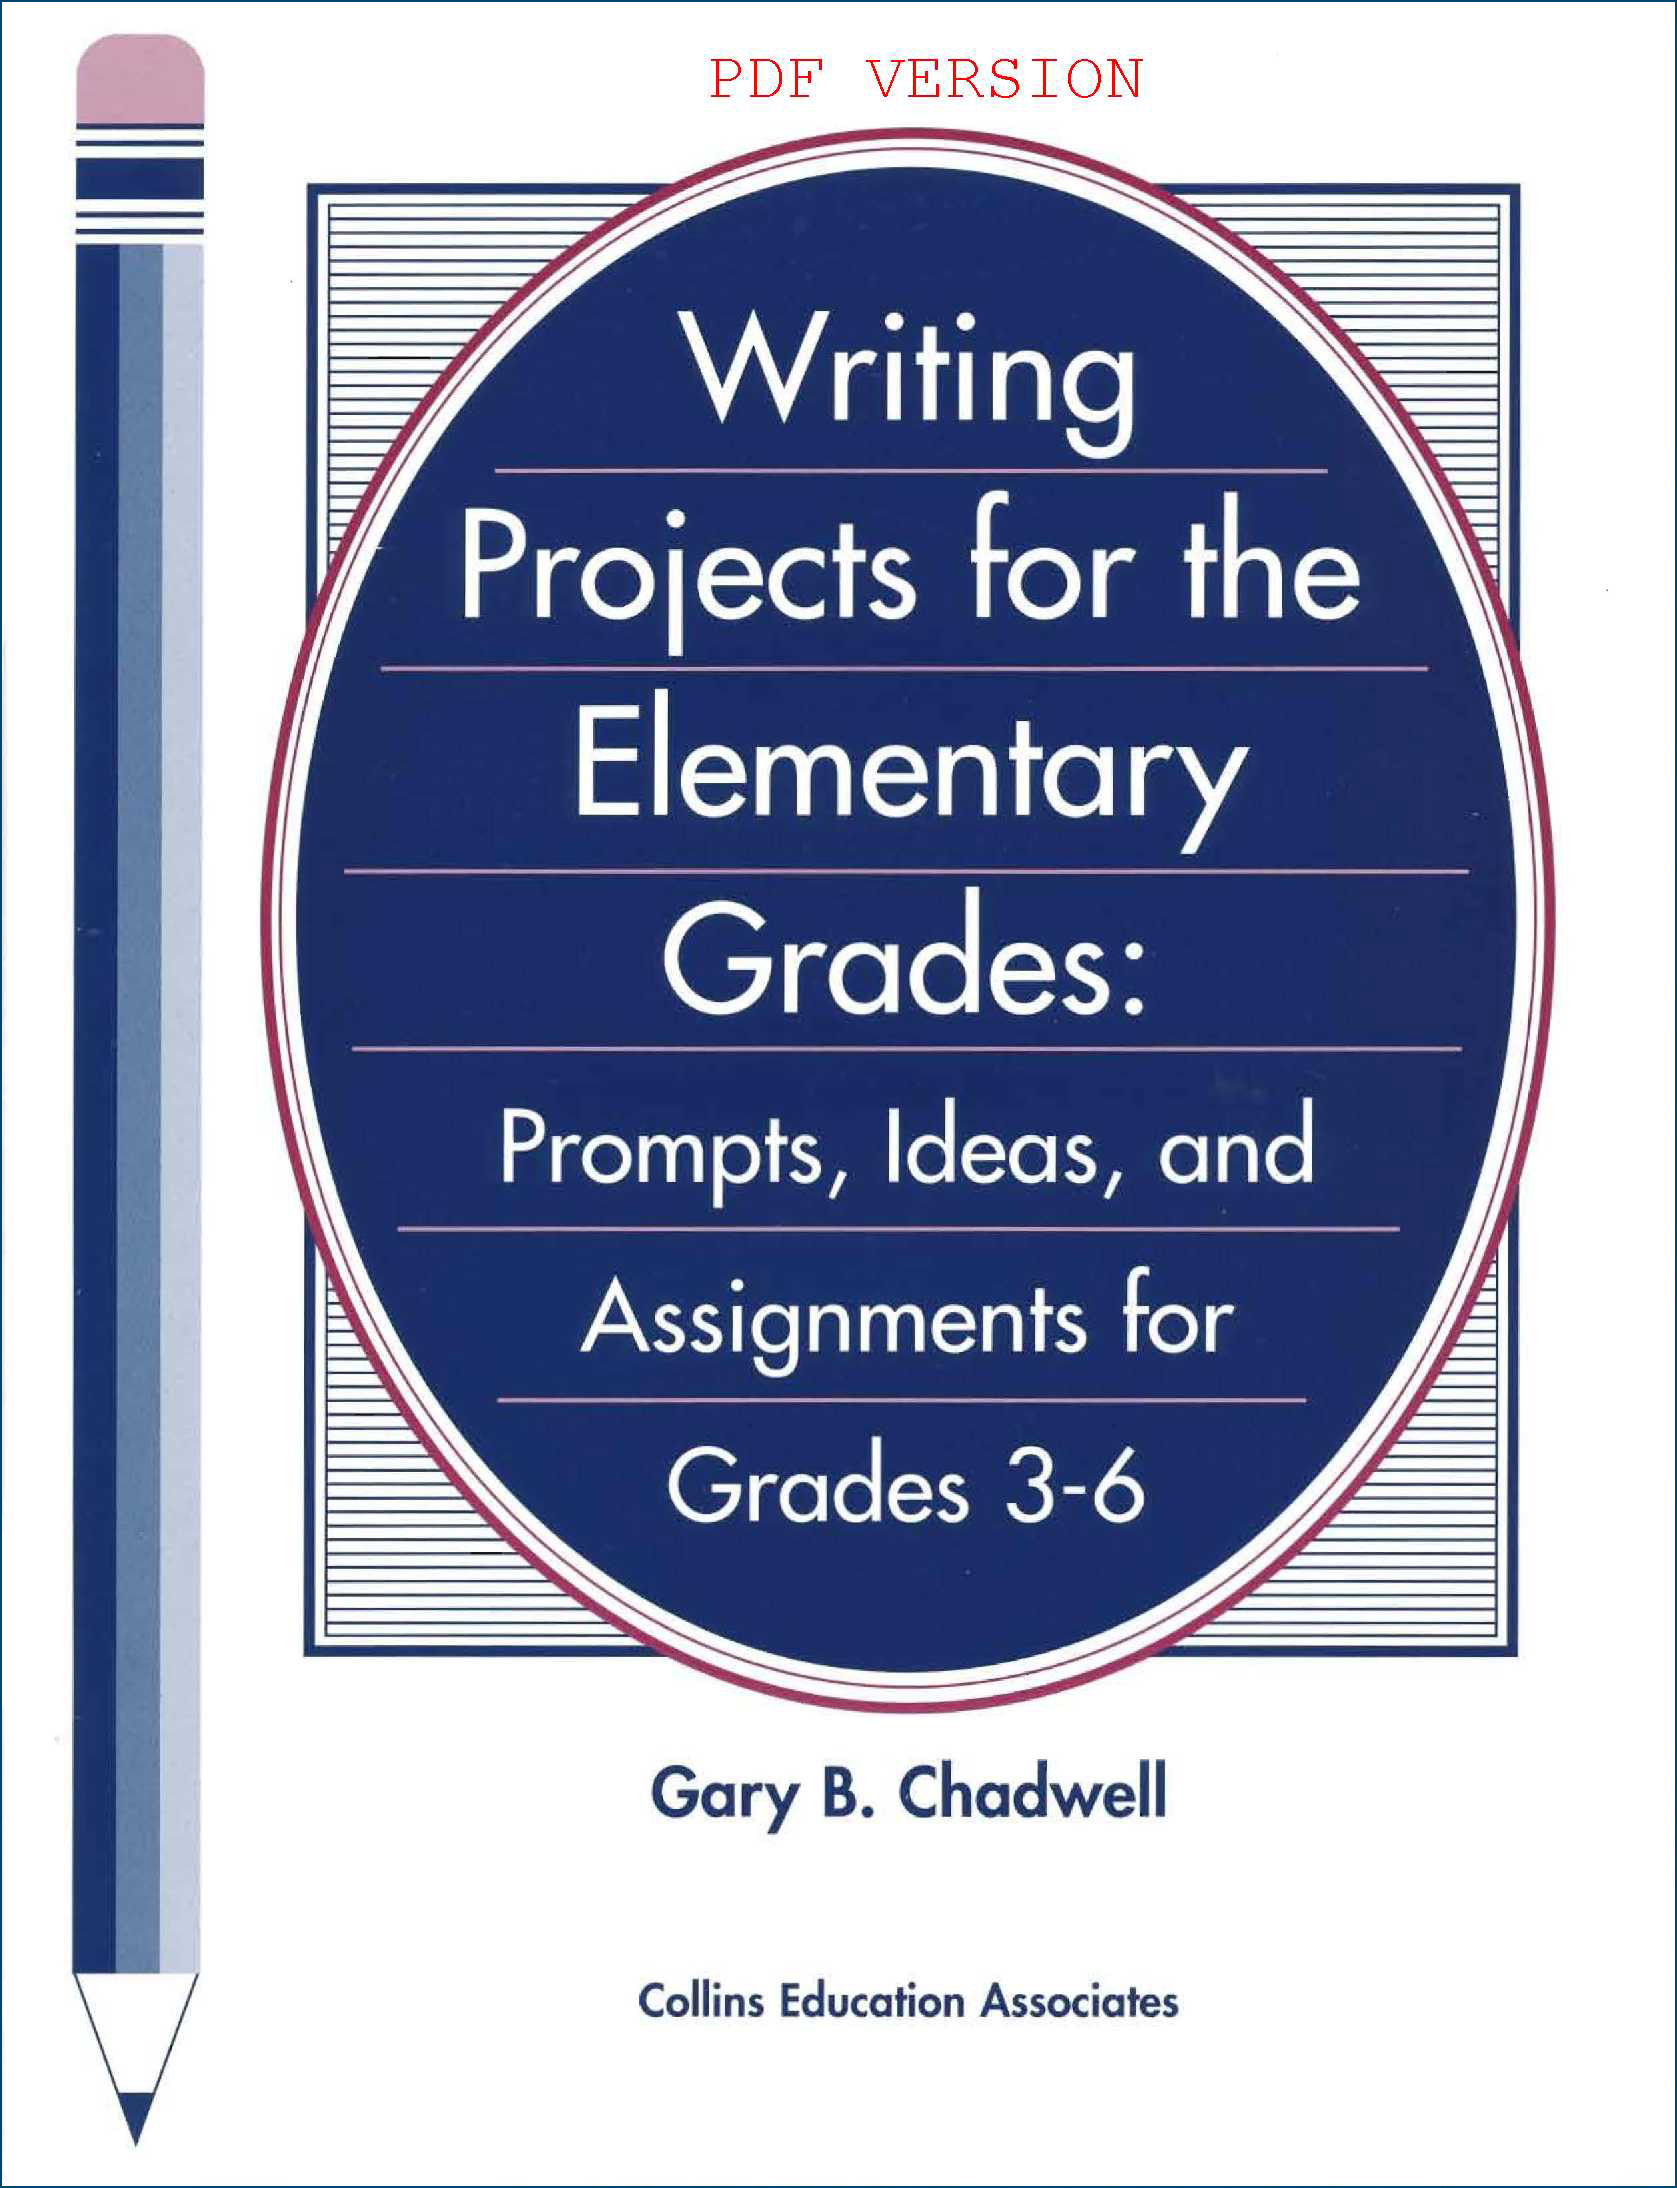 project writing pdf Conceptual (theoretical) framework writing a conceptual framework zbegin with an introductory paragraph introducing the elements of the conceptual framework.